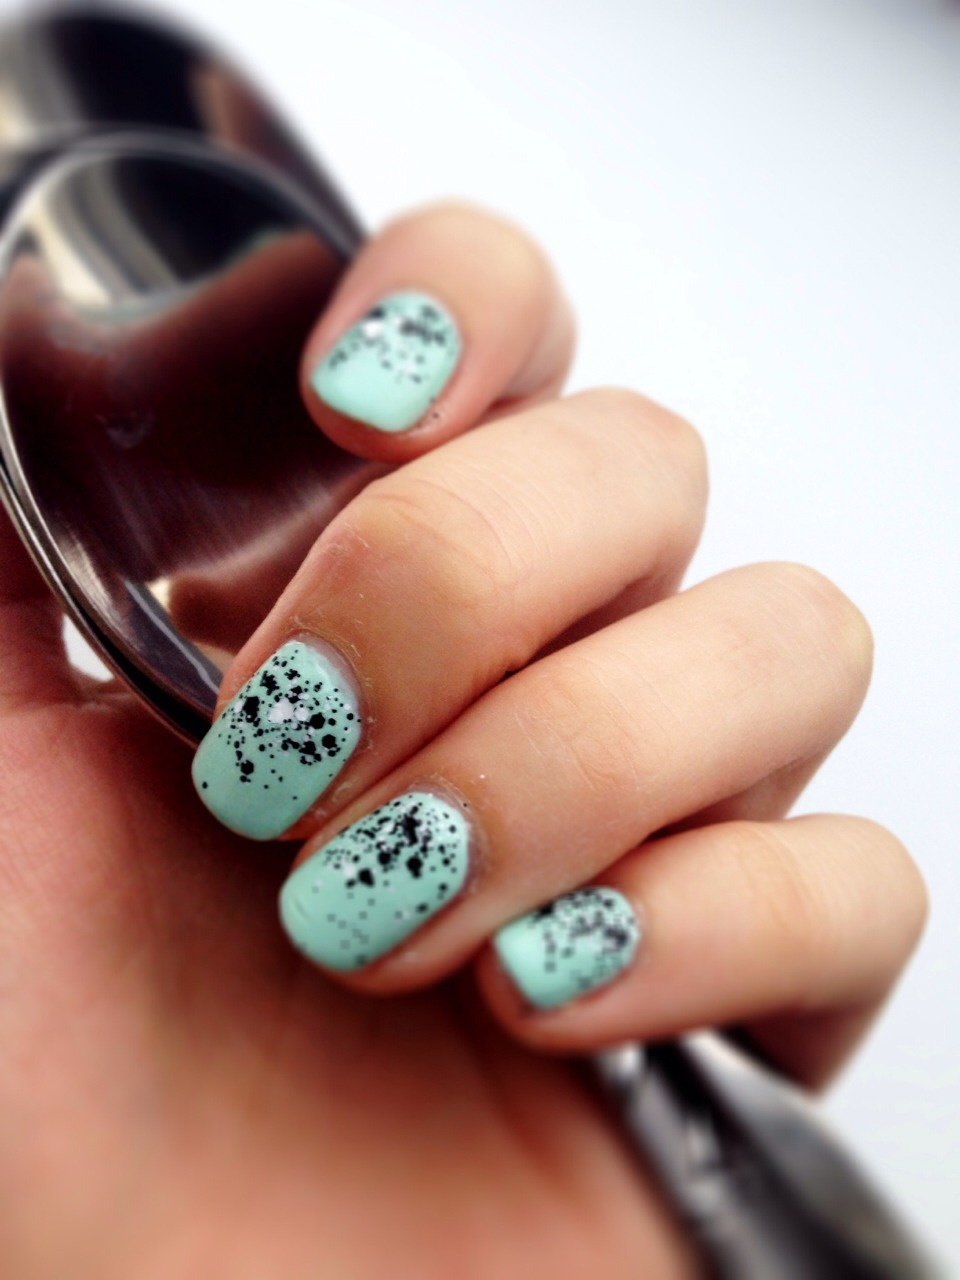 Enjoy your yummy new mint chocolate chip nails!  I came up with this combo on my own so chances are you'll be one of the original ladies to wear it! Please like👍 when saving to show your appreciation.. Thanks guys!